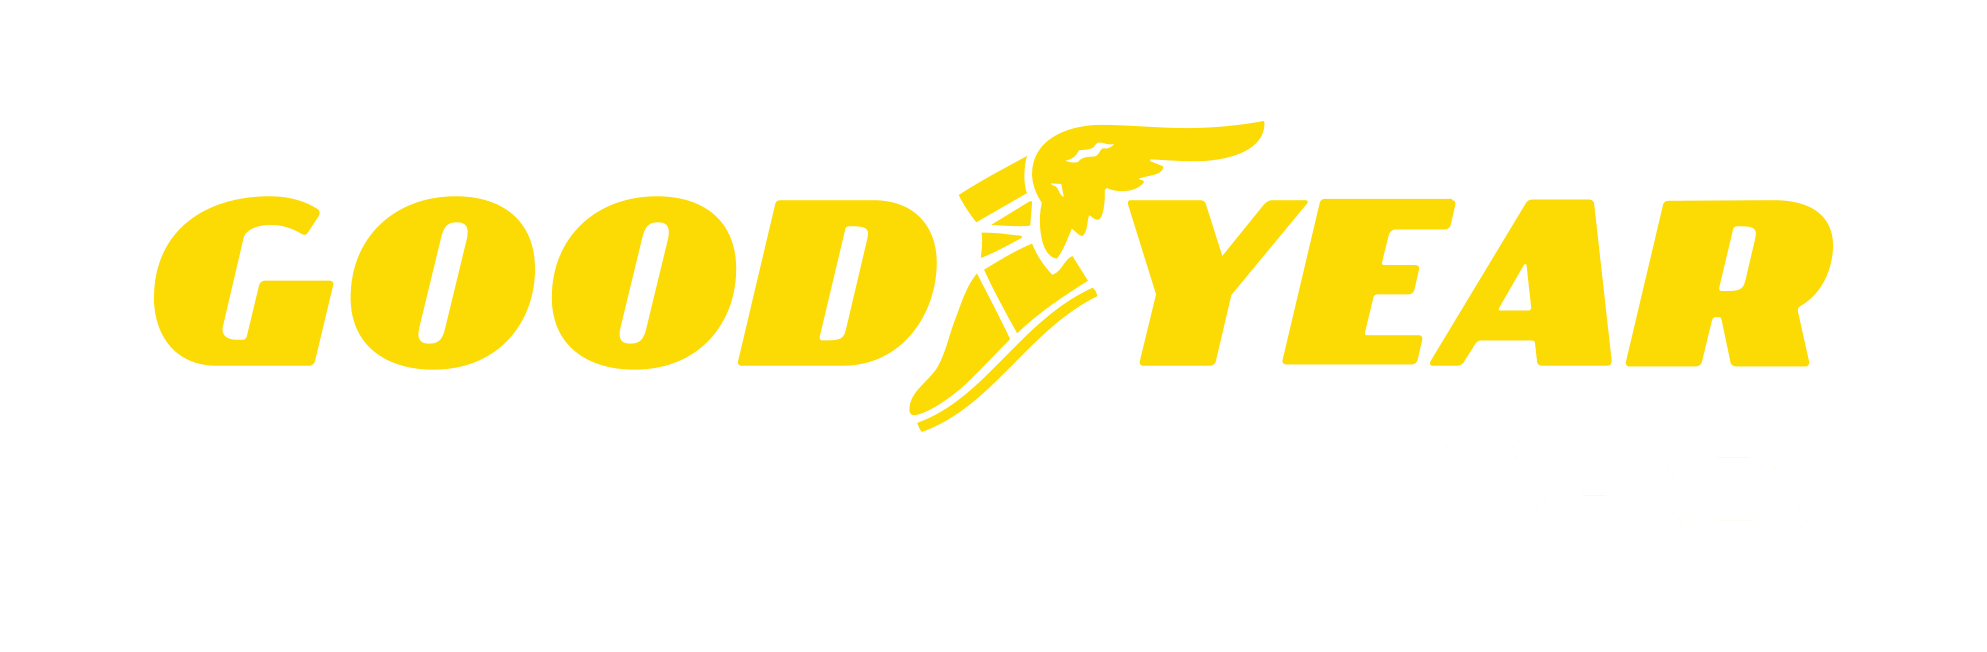 Goodyear Brakes Logo PNG No Background